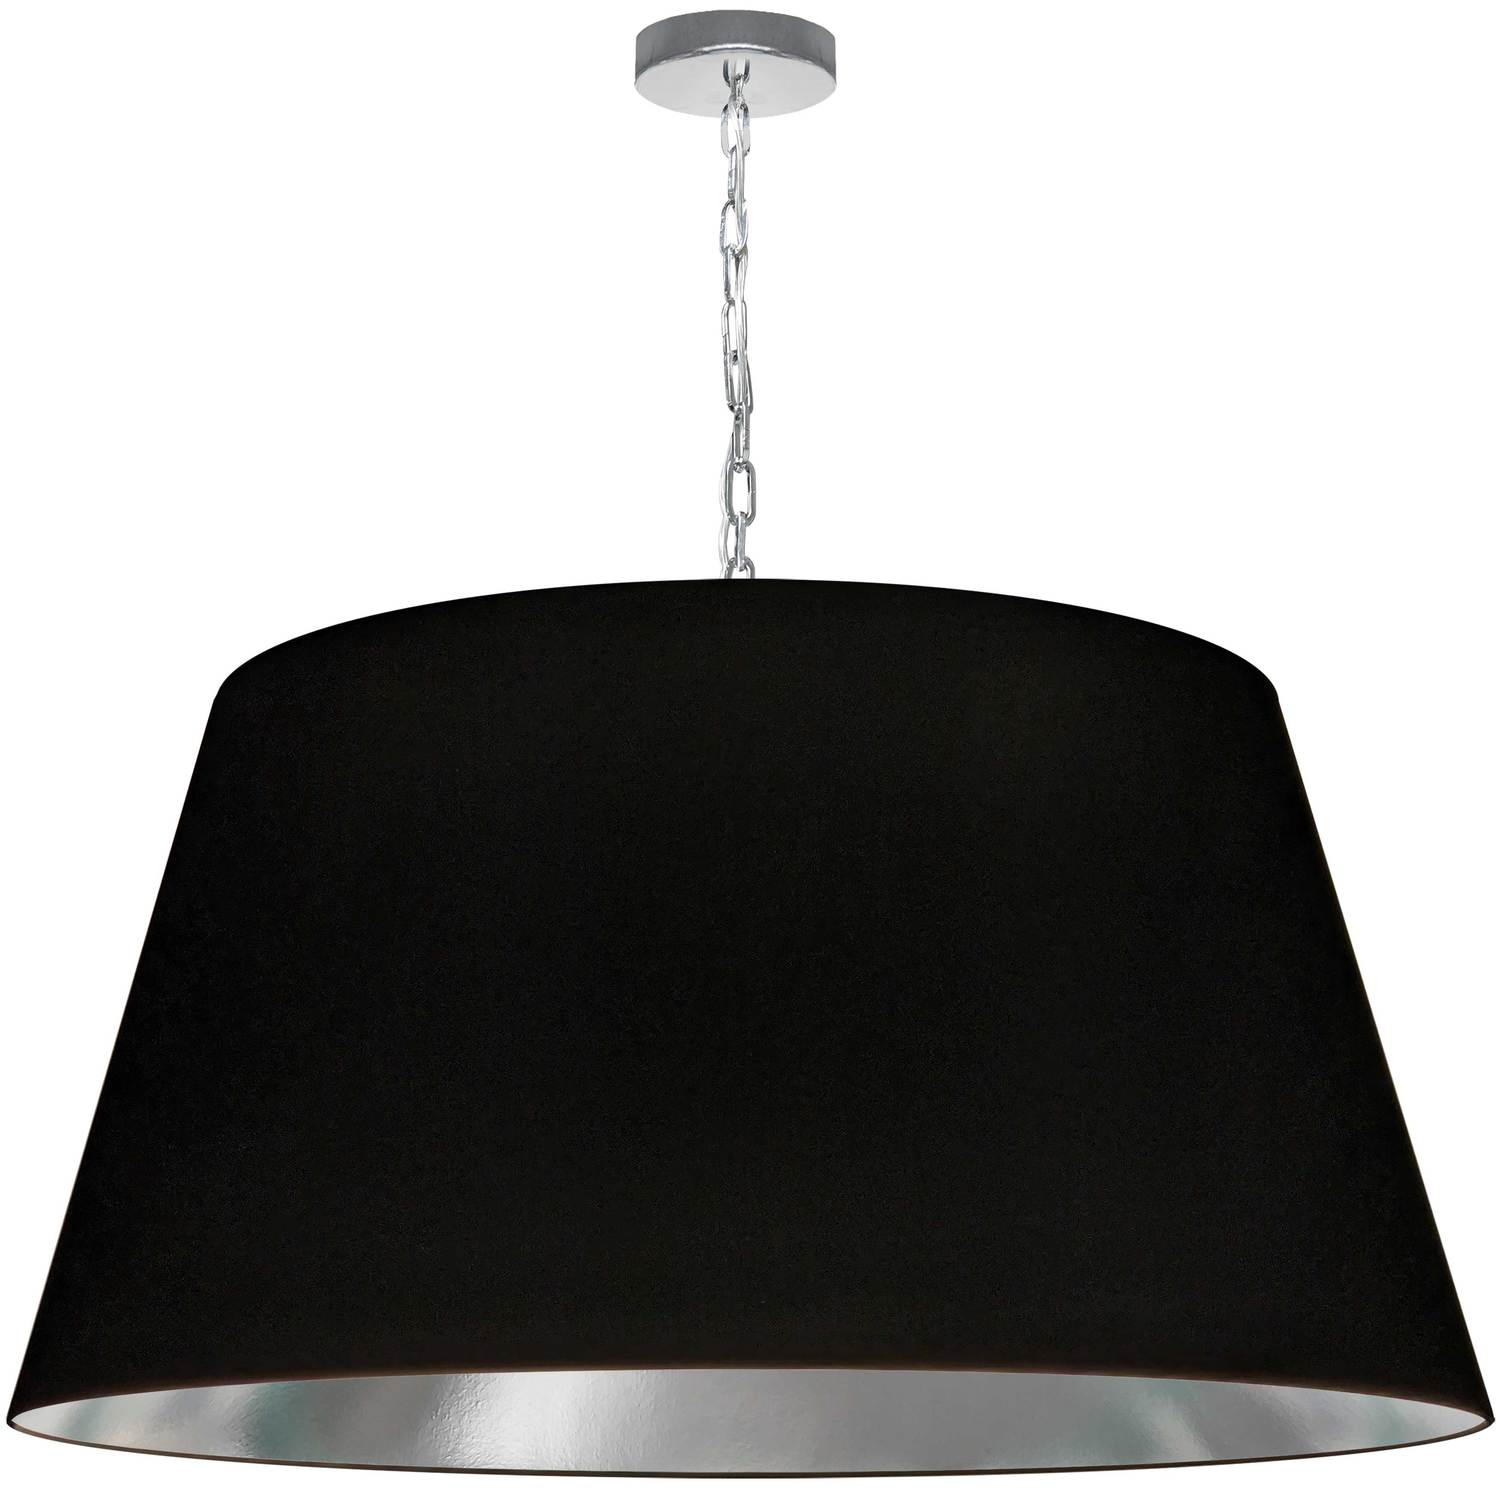 1 Light Brynn X-Large Pendant, Black/Silver Shade, Polished Chrome